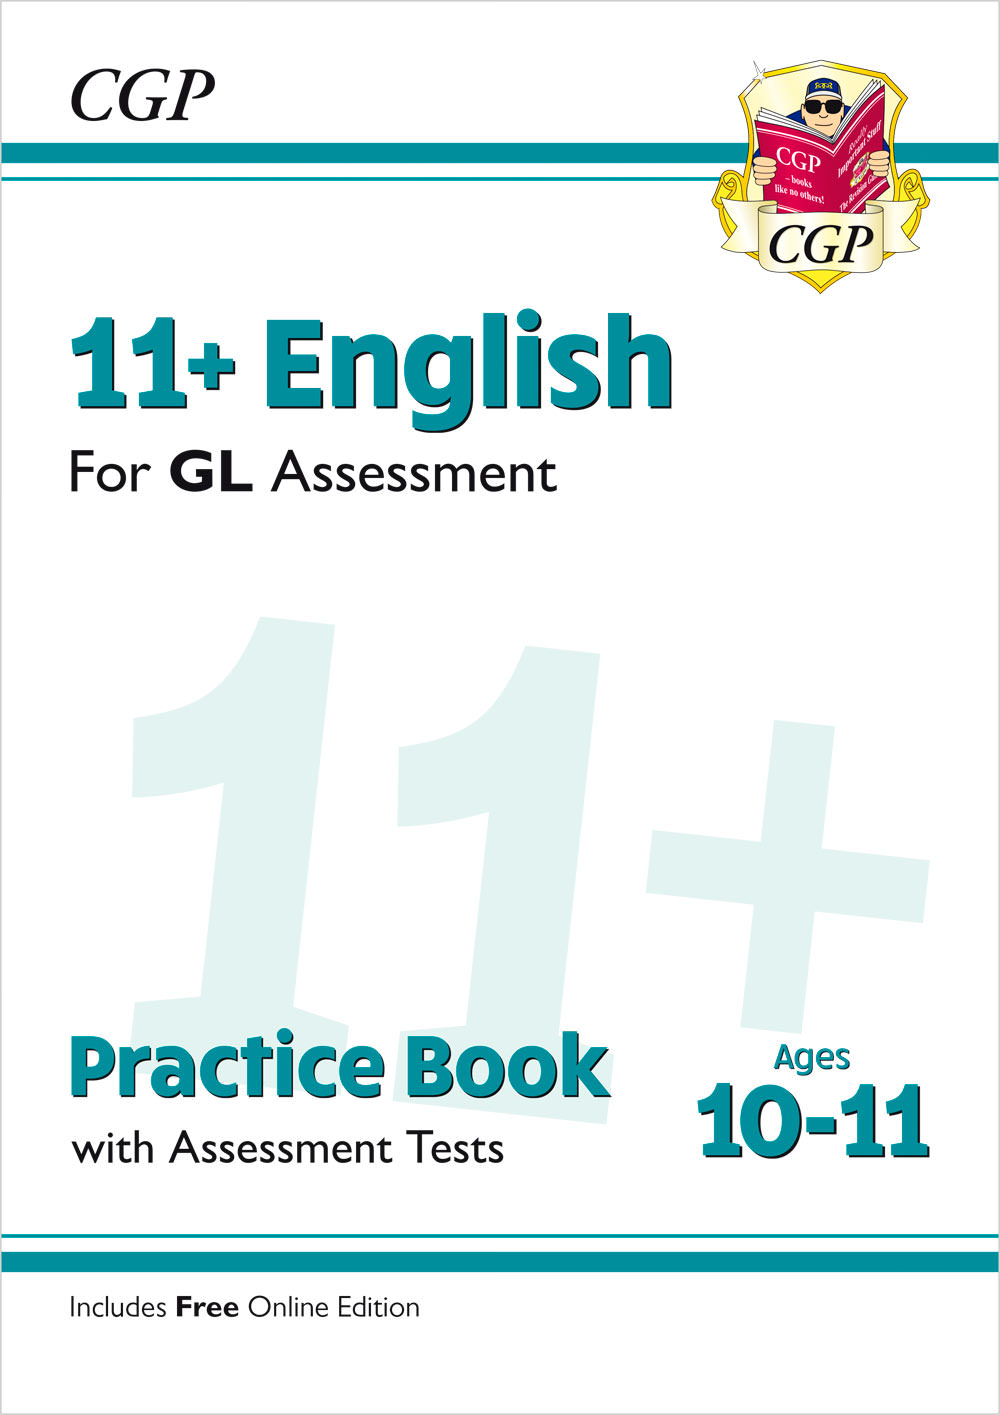 E6QE2 - 11+ GL English Practice Book & Assessment Tests - Ages 10-11 (with Online Edition)